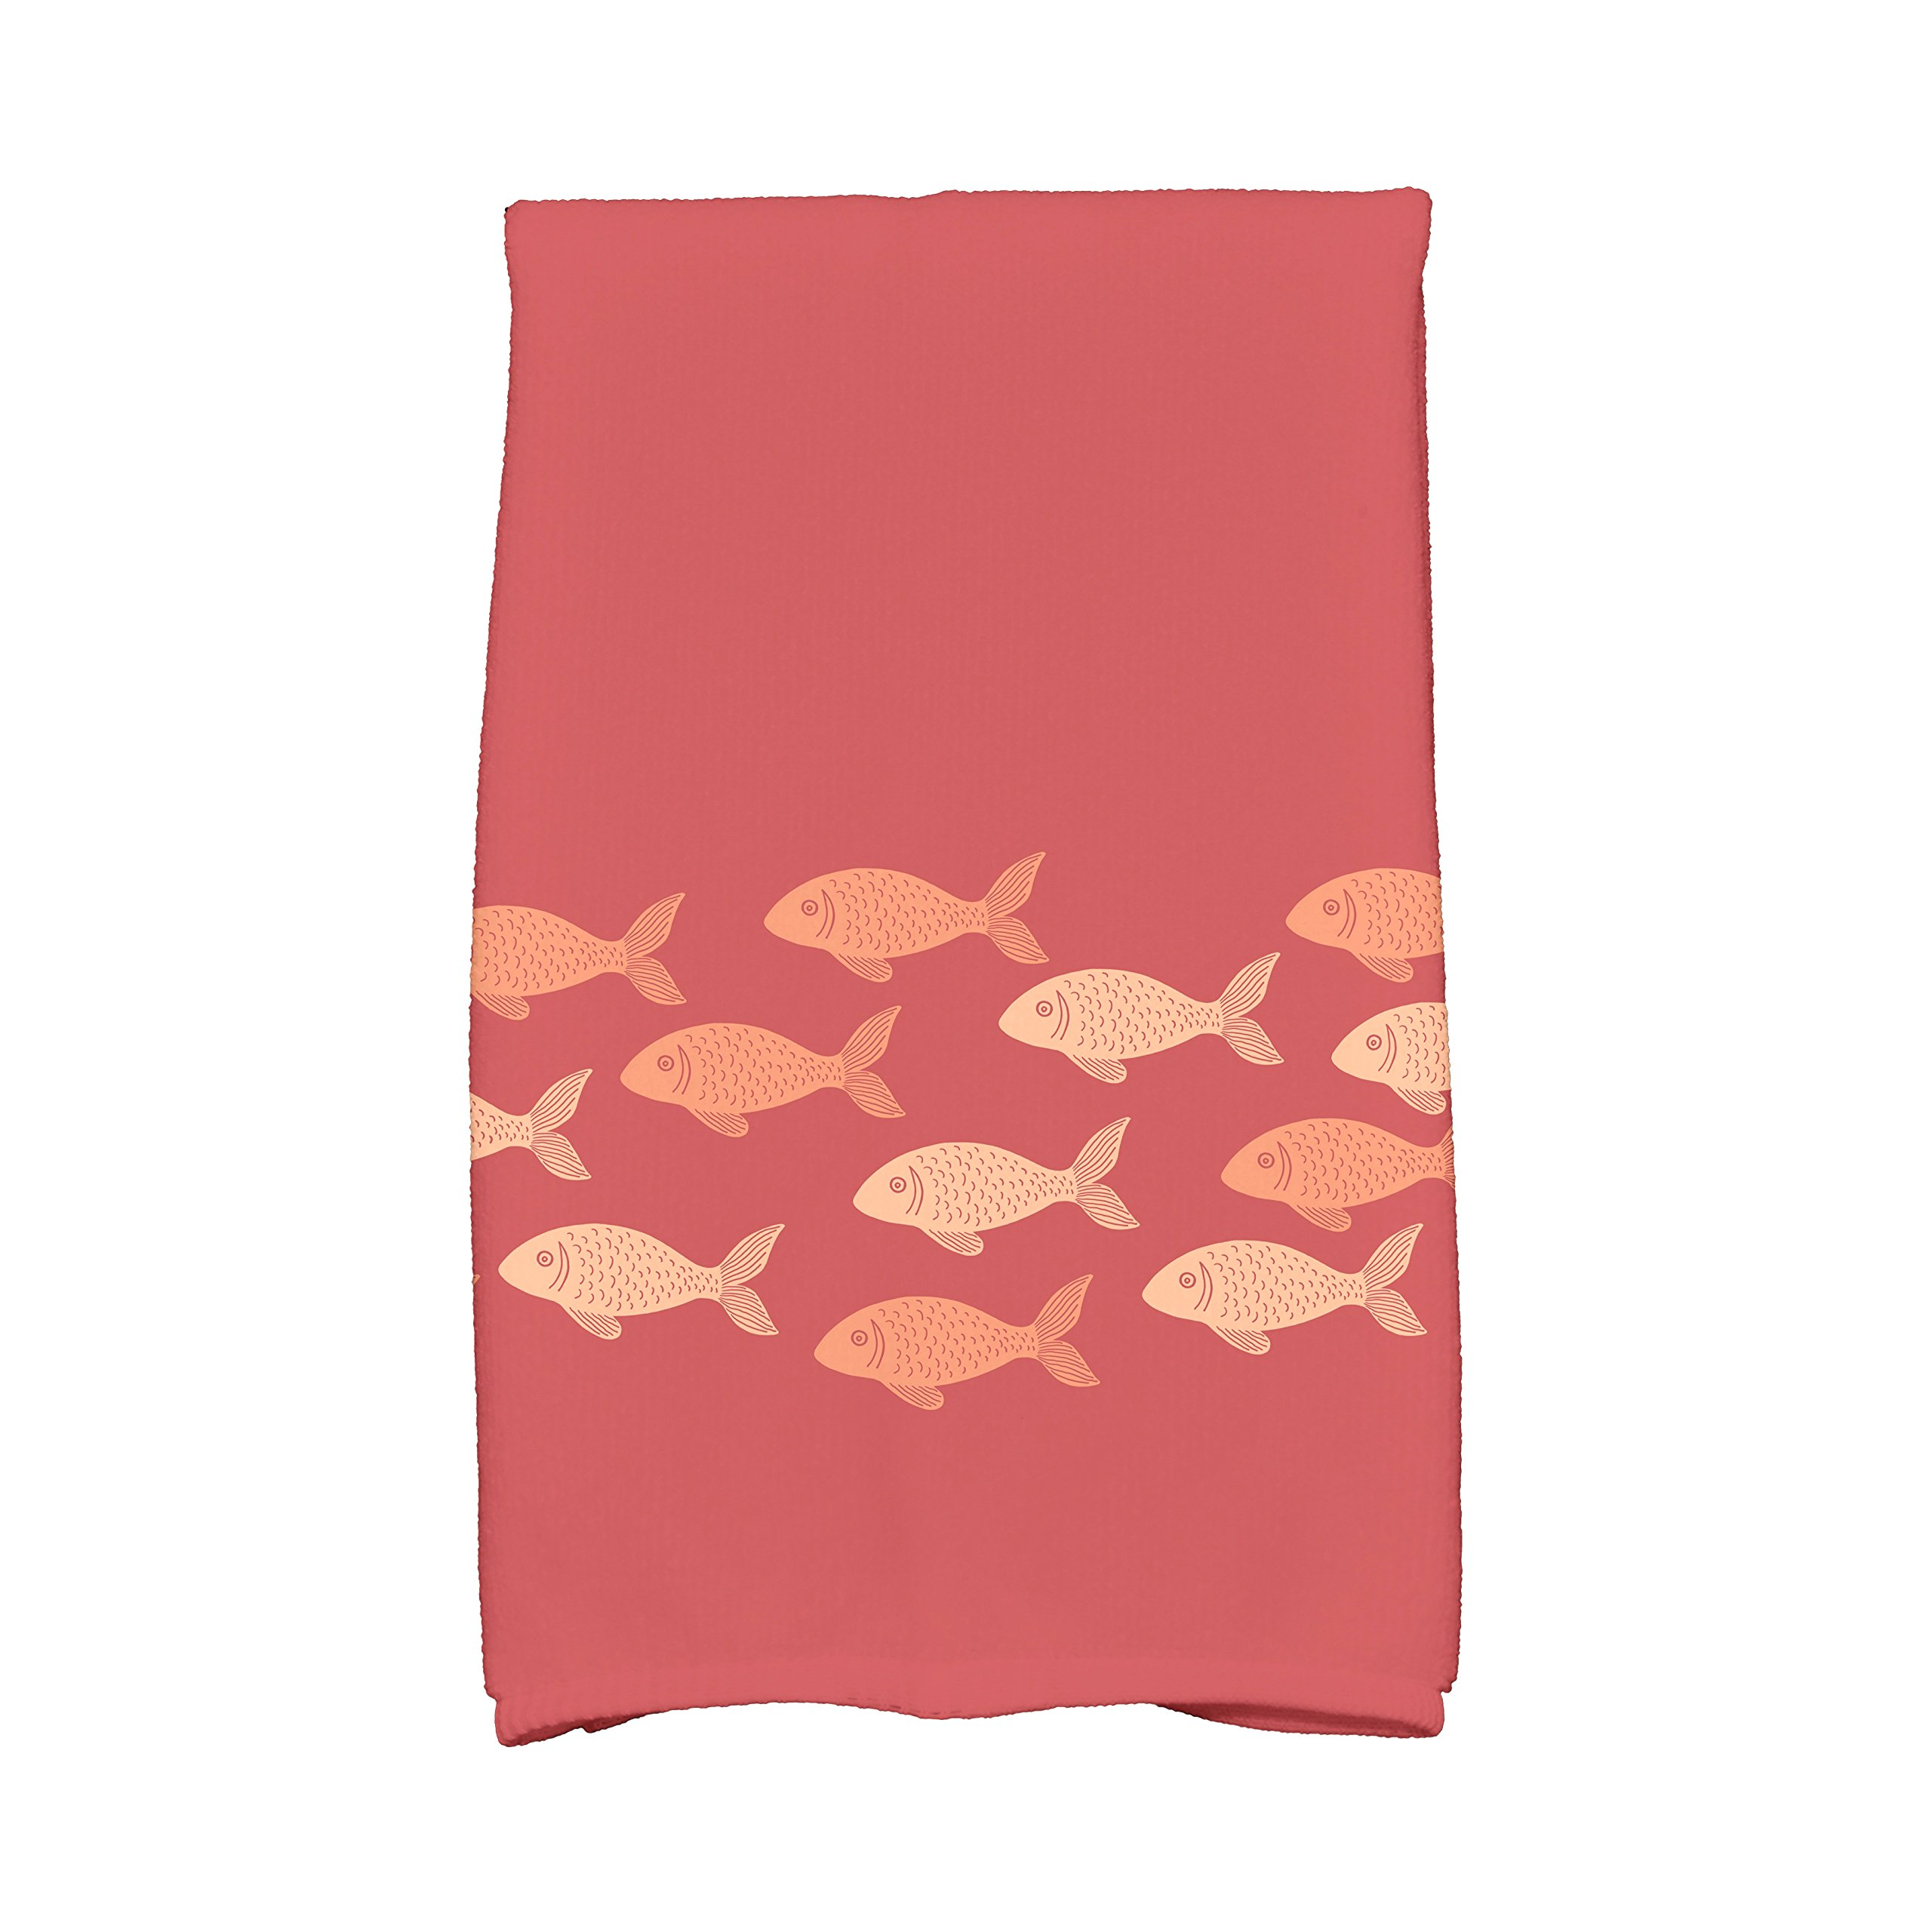 E by design KTAN424OR15OR10 Fish Line Animal Print Kitchen Towel, 16'' x 25'', Coral